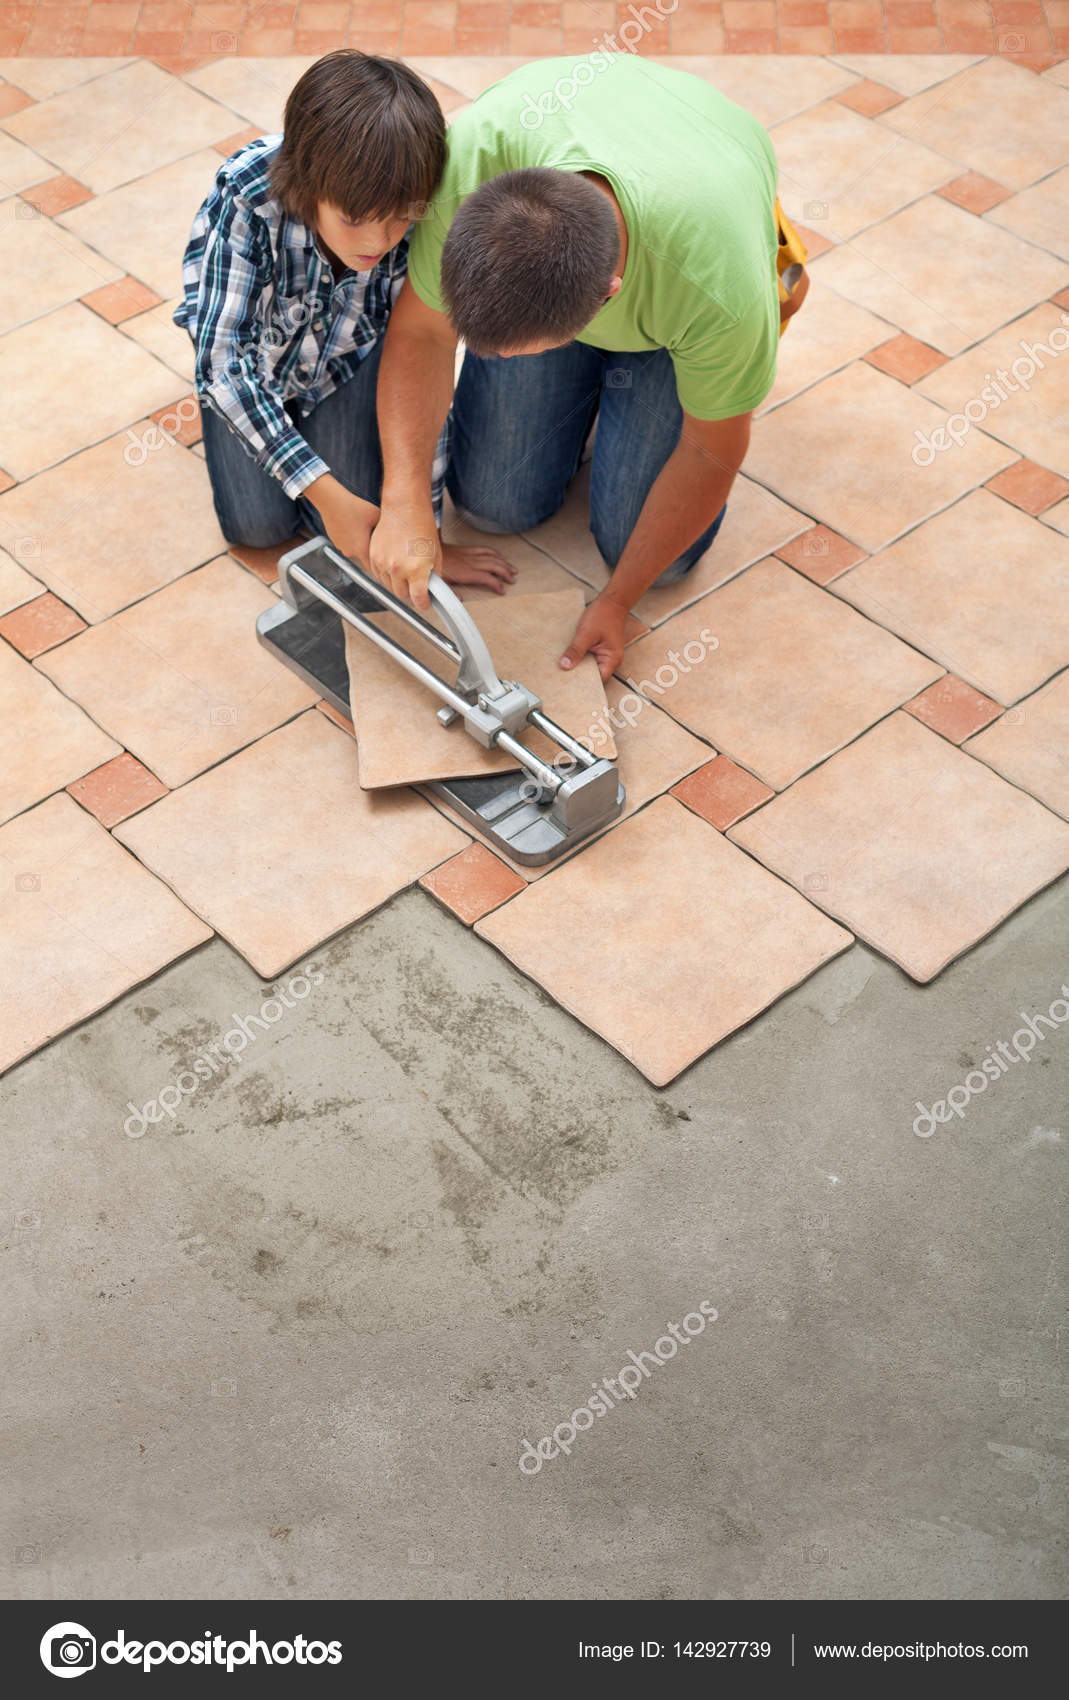 Young Boy Learning How To Cut A Ceramic Floor Tile Stock Photo